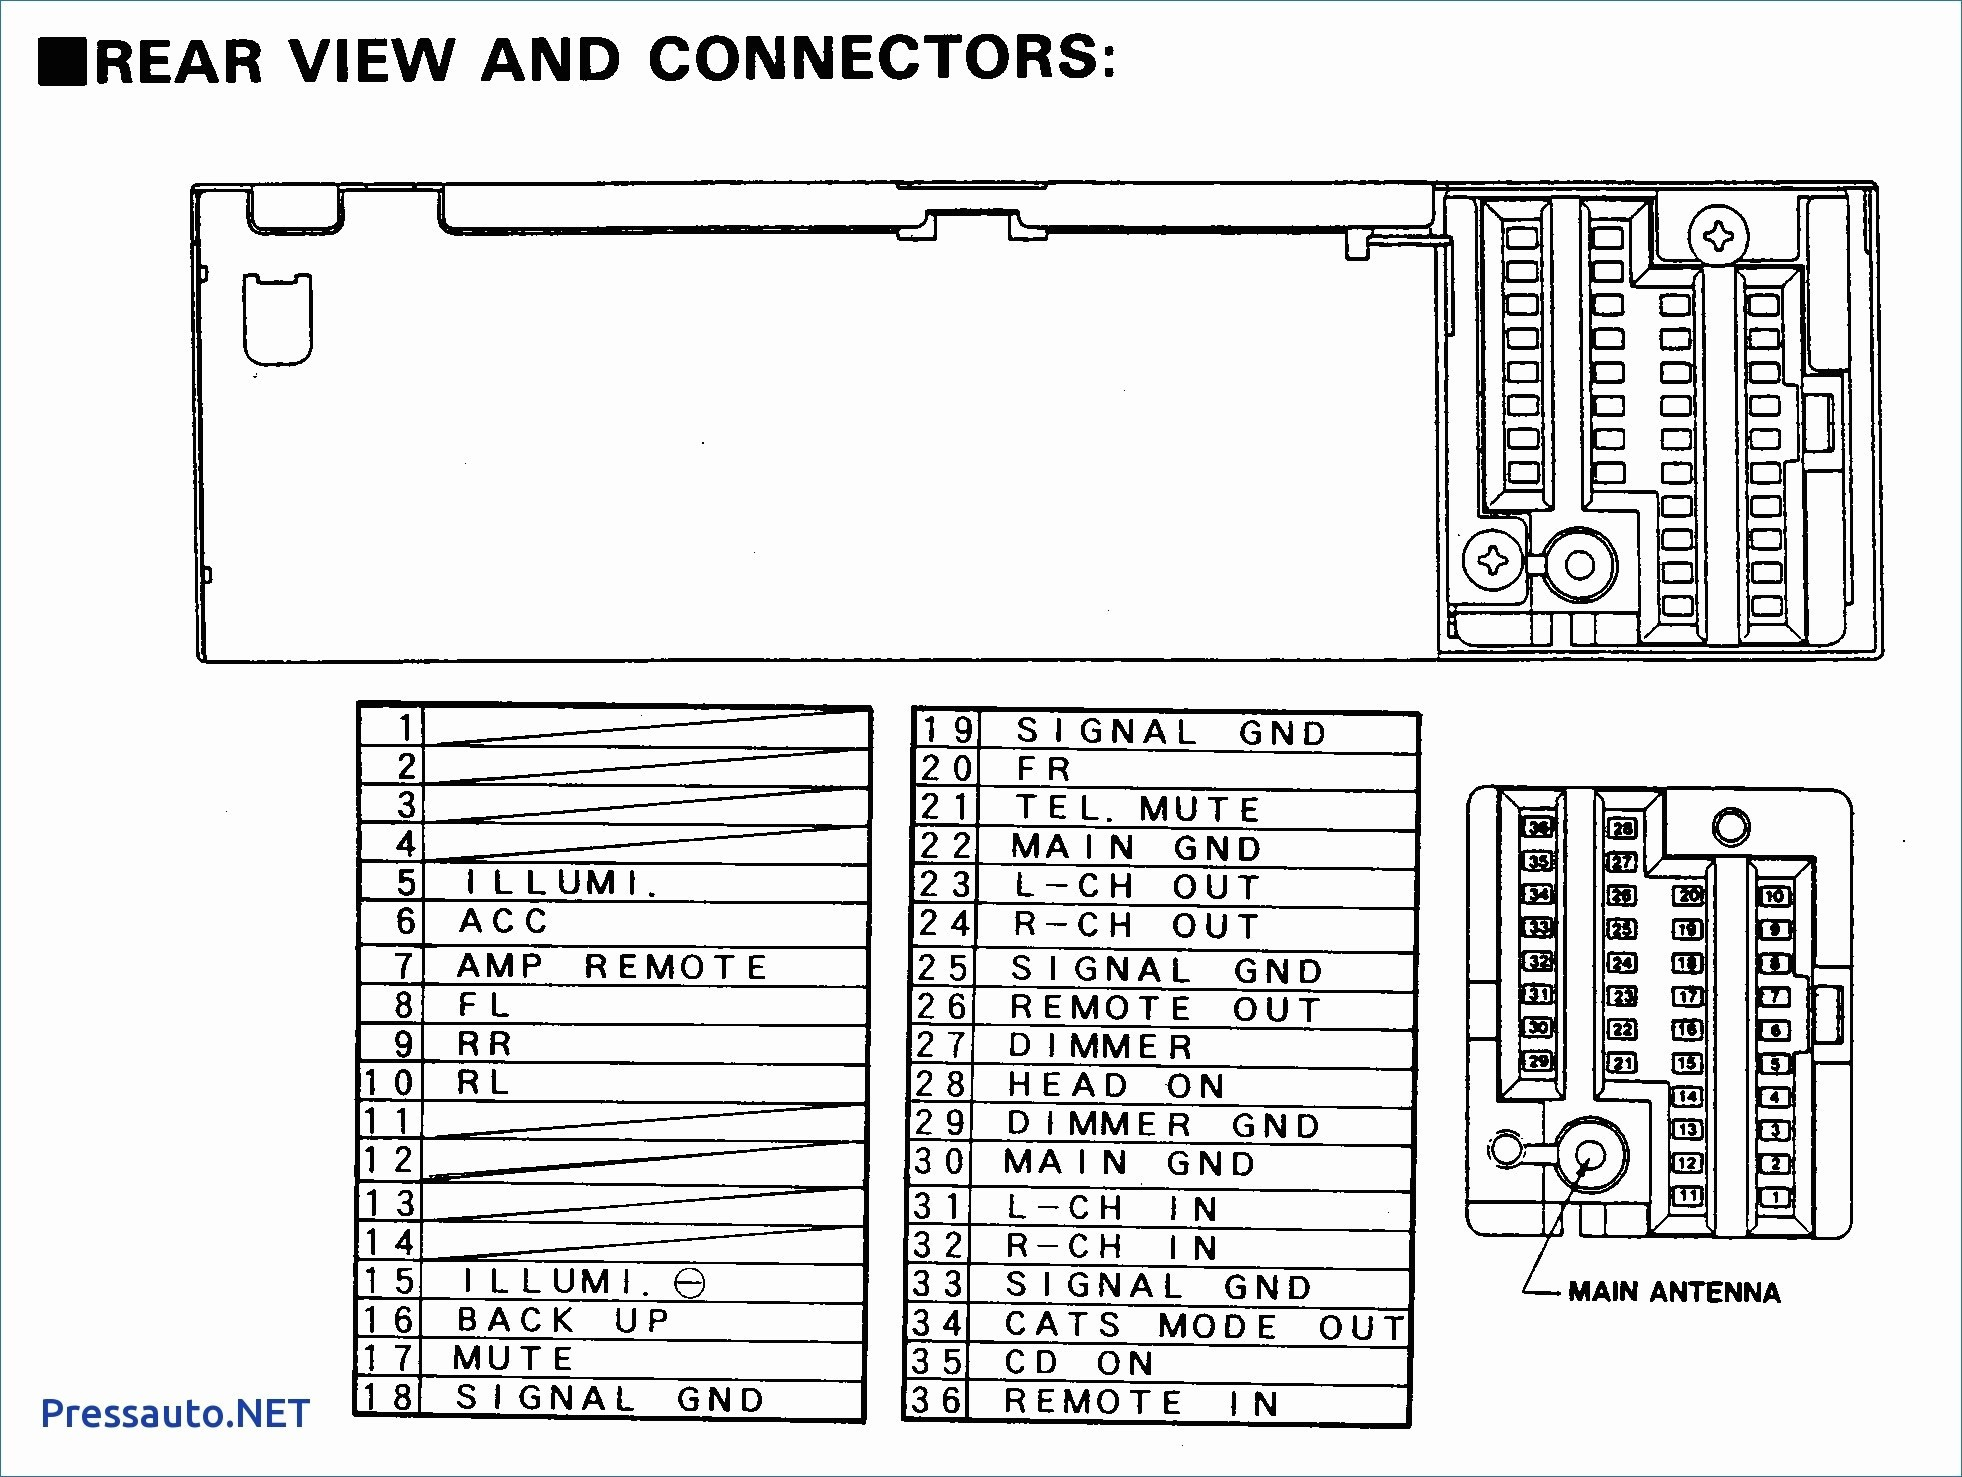 Bmw amplifier wiring diagram trusted wiring diagrams e90 wiring diagram wiring diagram image rh mainetreasurechest com bmw e38 amplifier wiring diagram bmw e53 asfbconference2016 Images